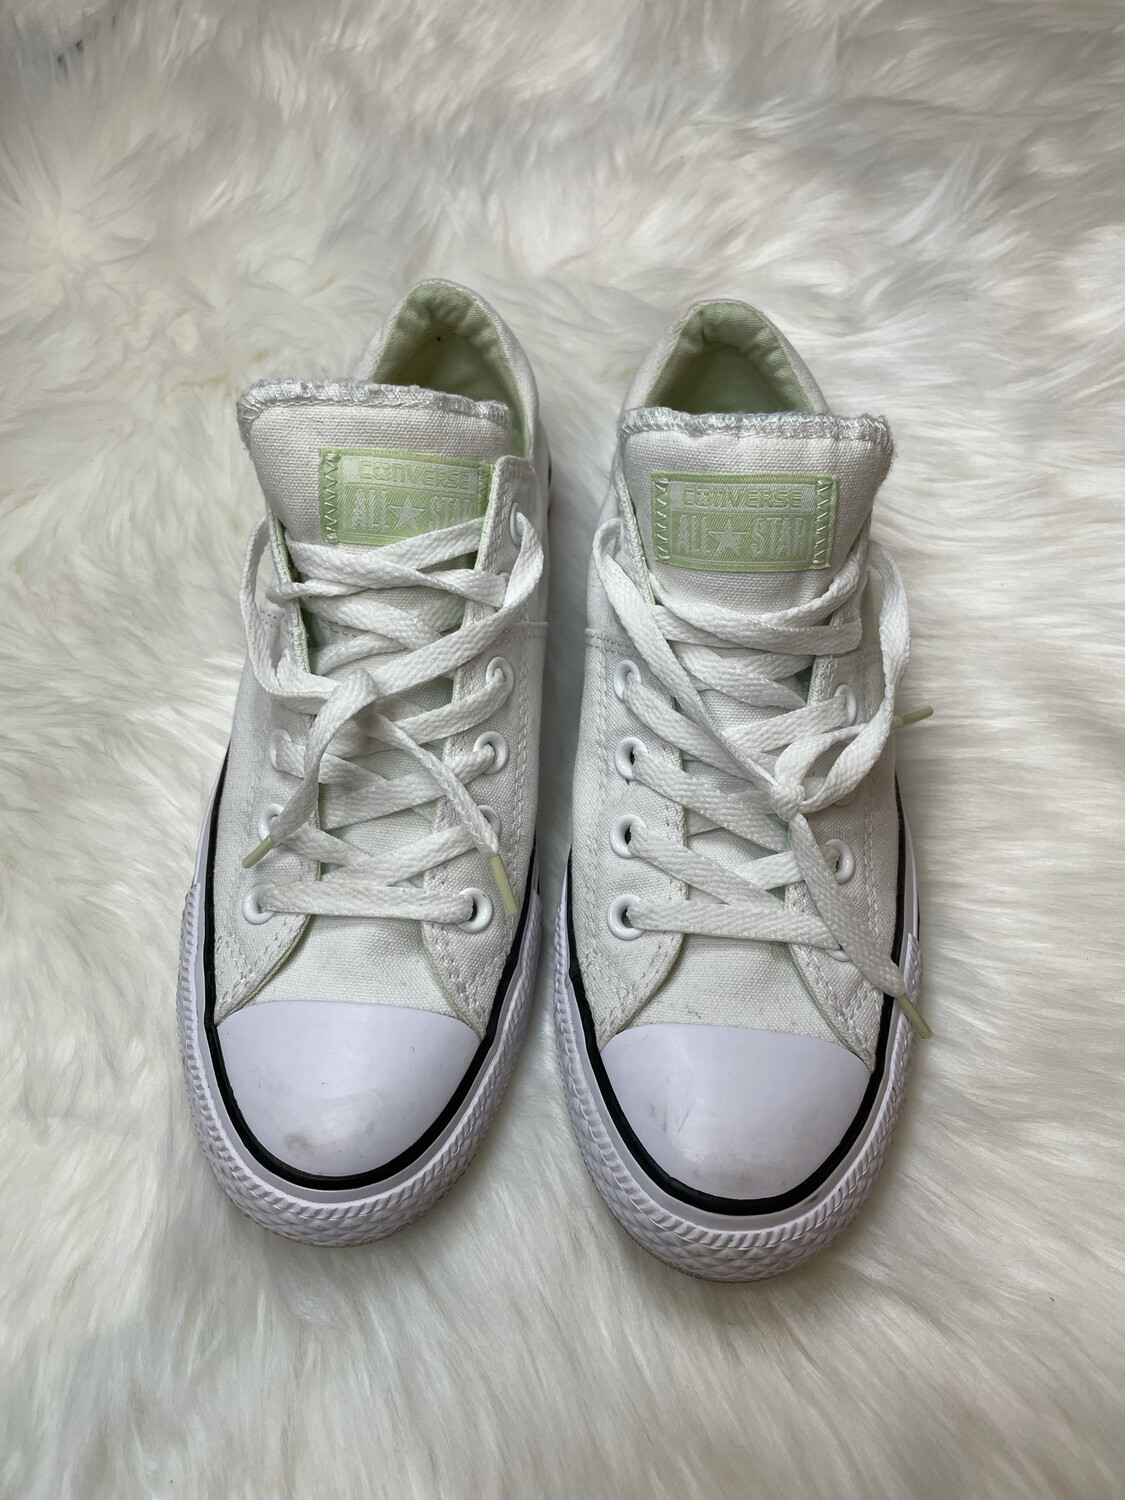 Converse White Lace Up Sneakers - Size 9